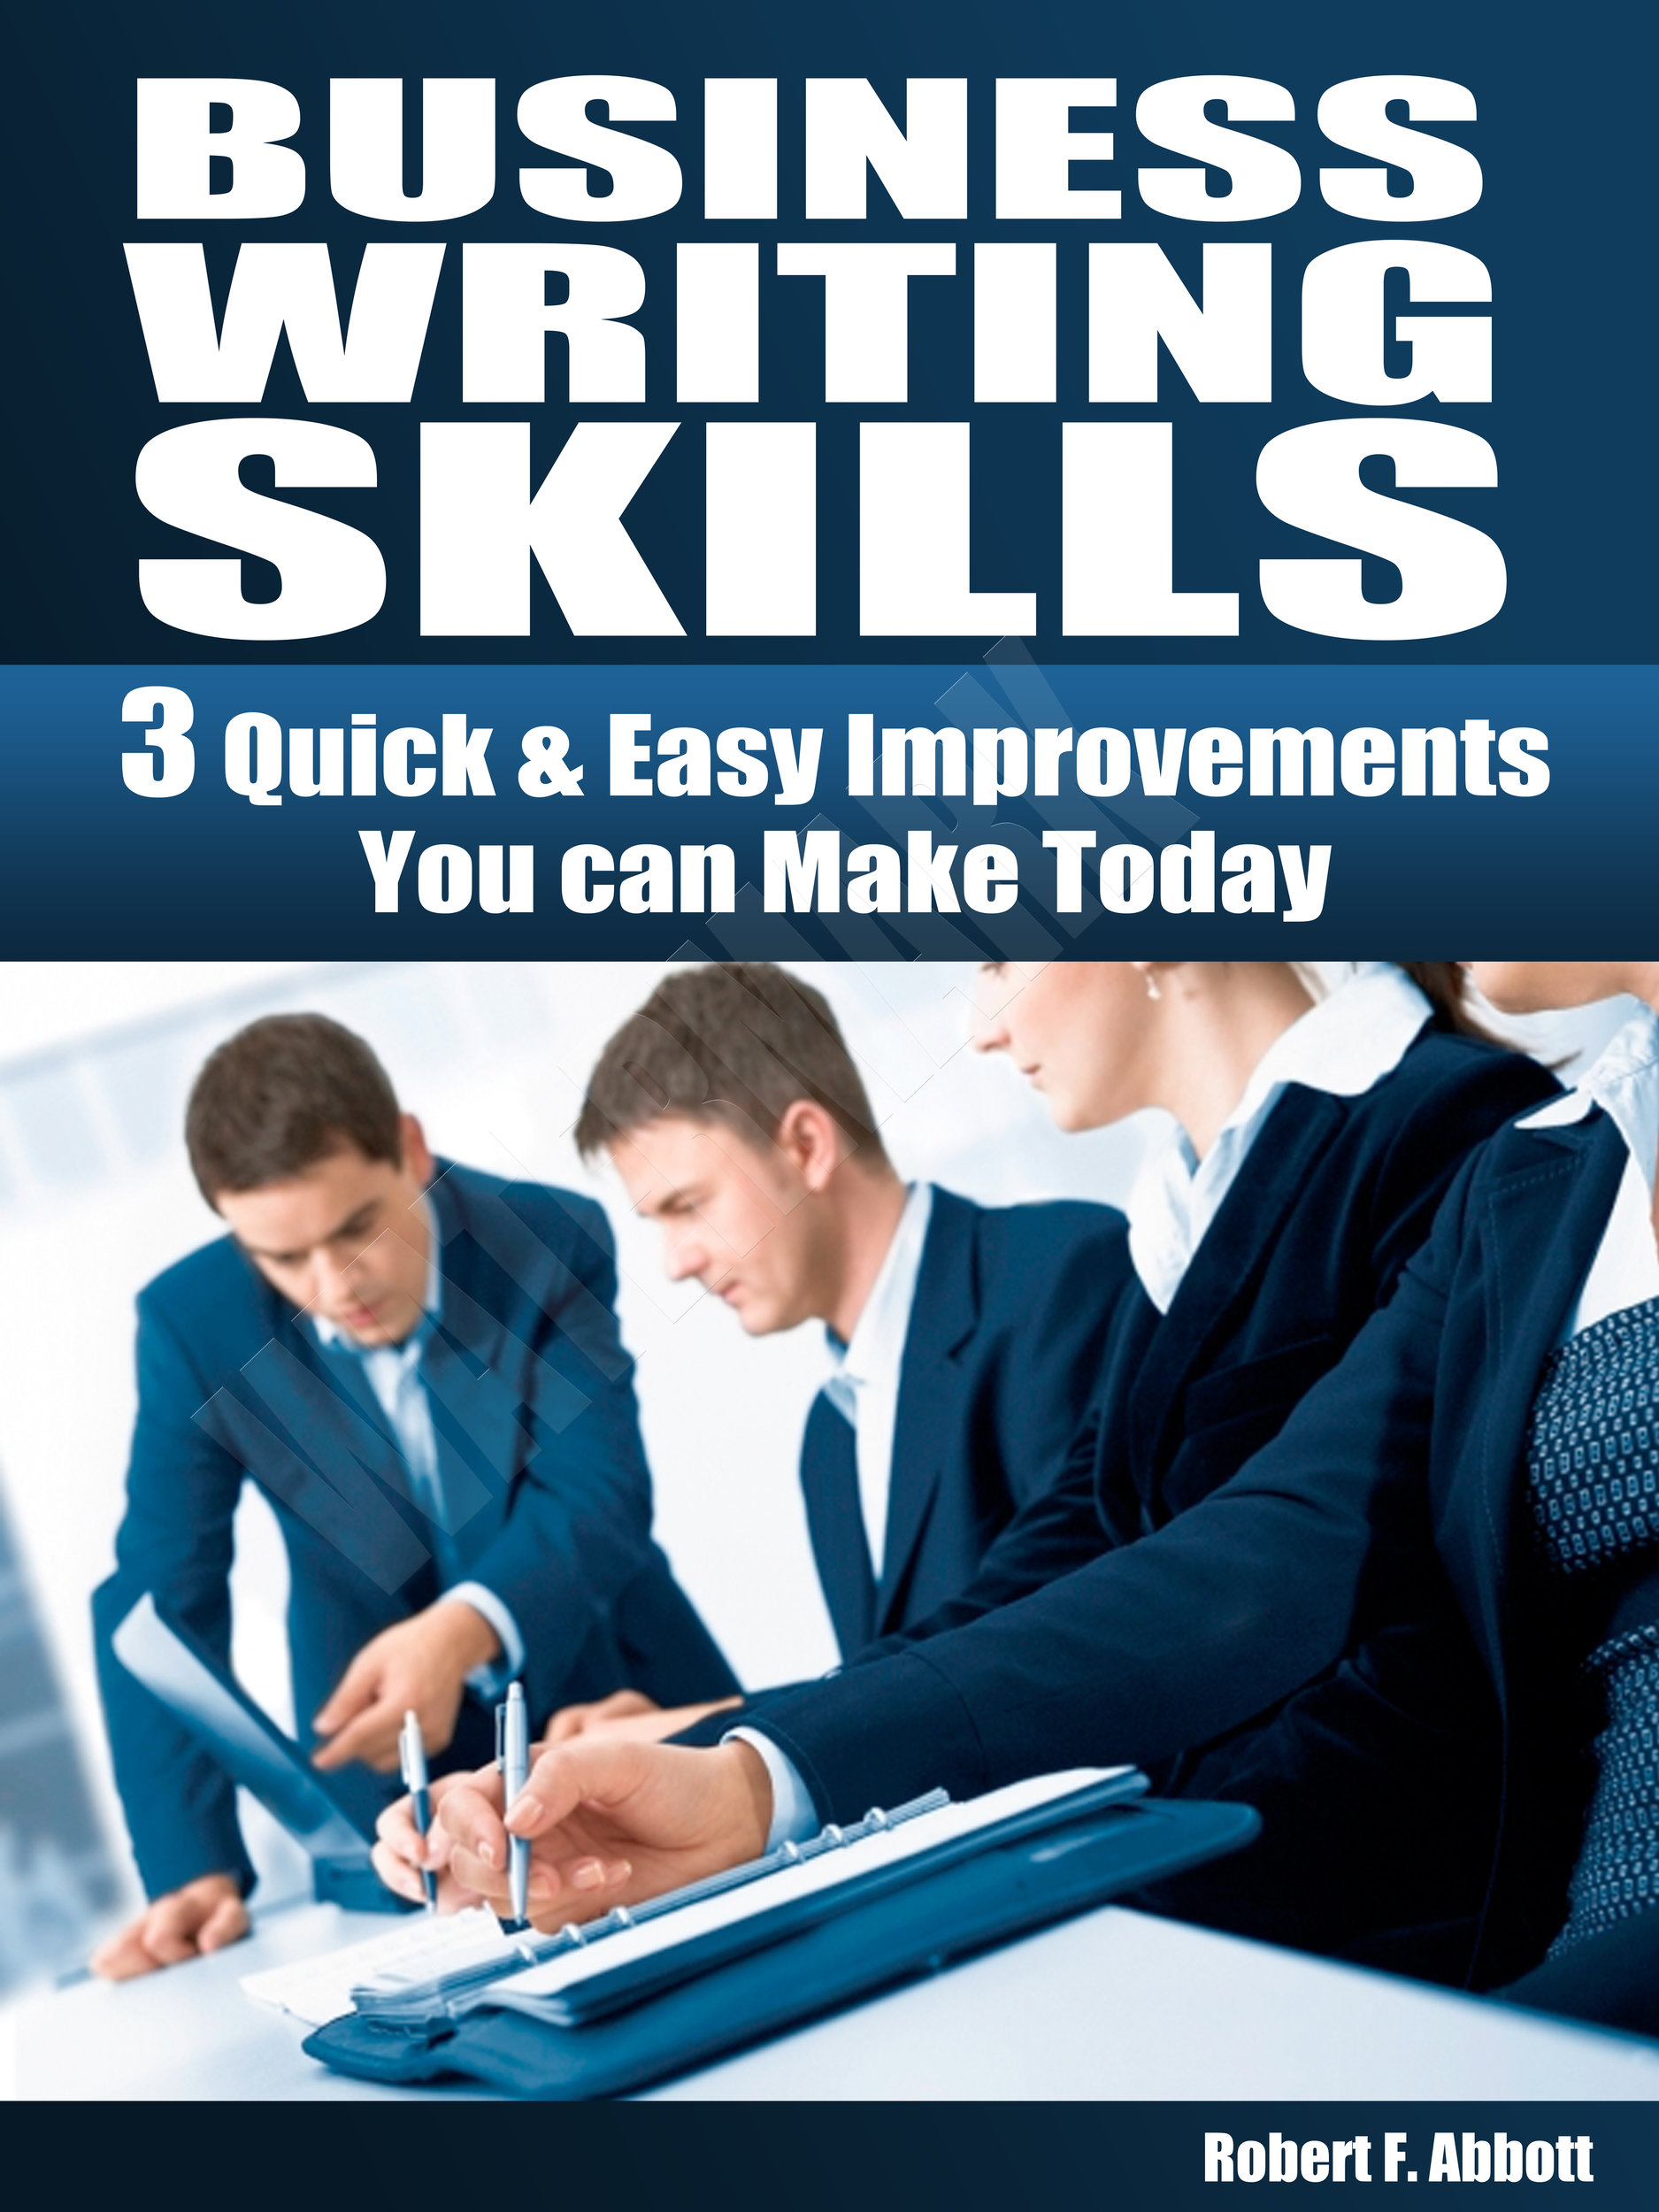 online report writing skills This onsite report writing training program will help participants learn to practice the habits of good writers schedule this workshop for your group.